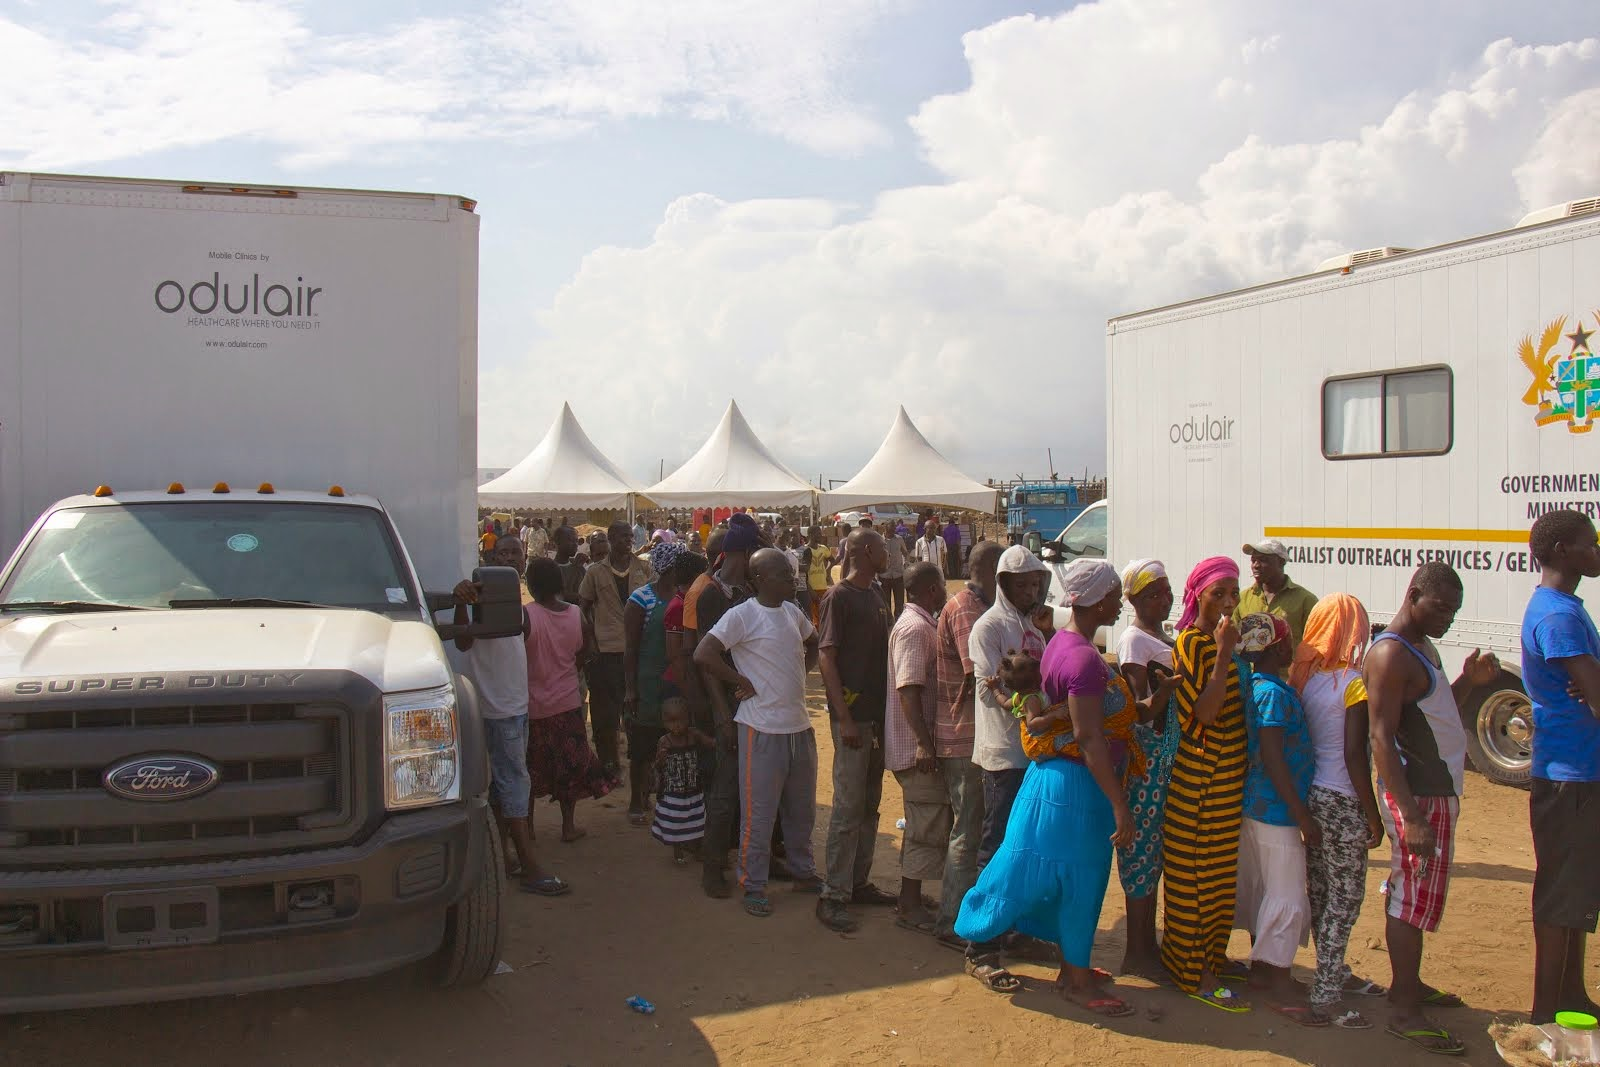 Mobile Clinics ODULAIR: Mobile Medical Clinic Cost: The